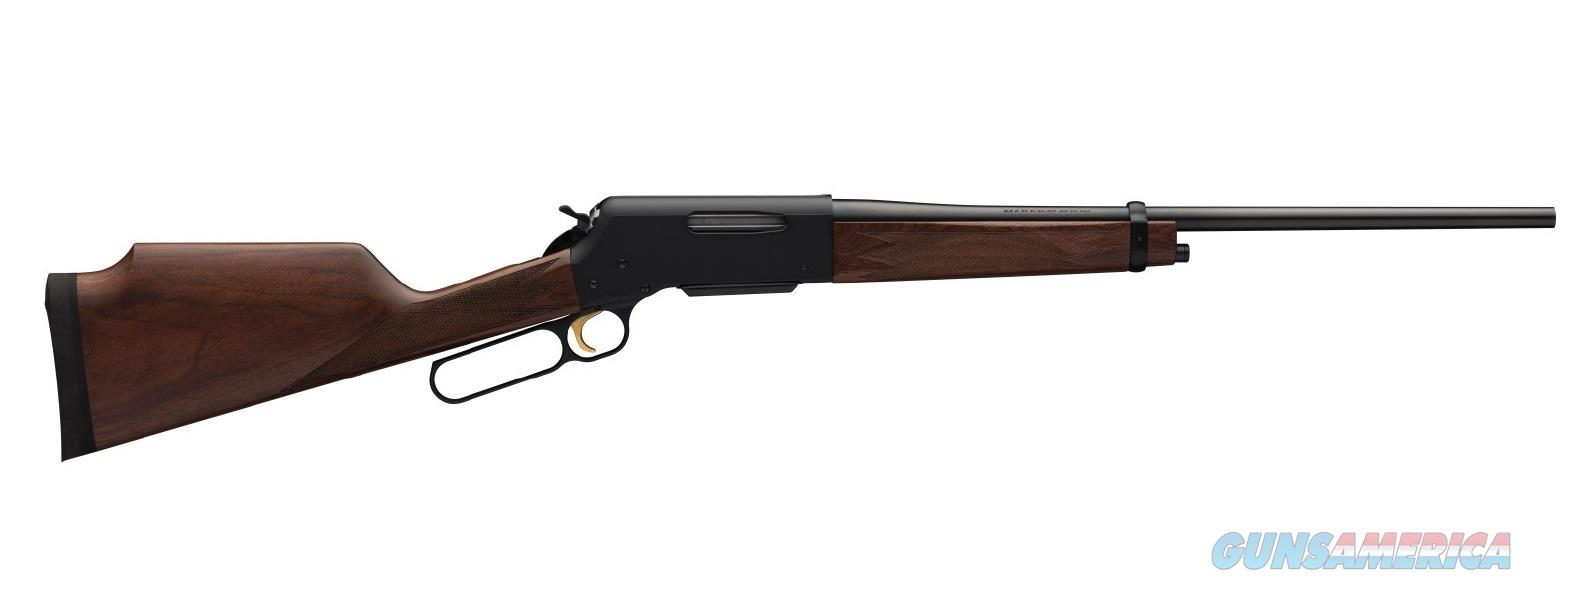 Browning BLR LGTWGT MONTE CARLO 270WIN   Guns > Rifles > Browning Rifles > Lever Action